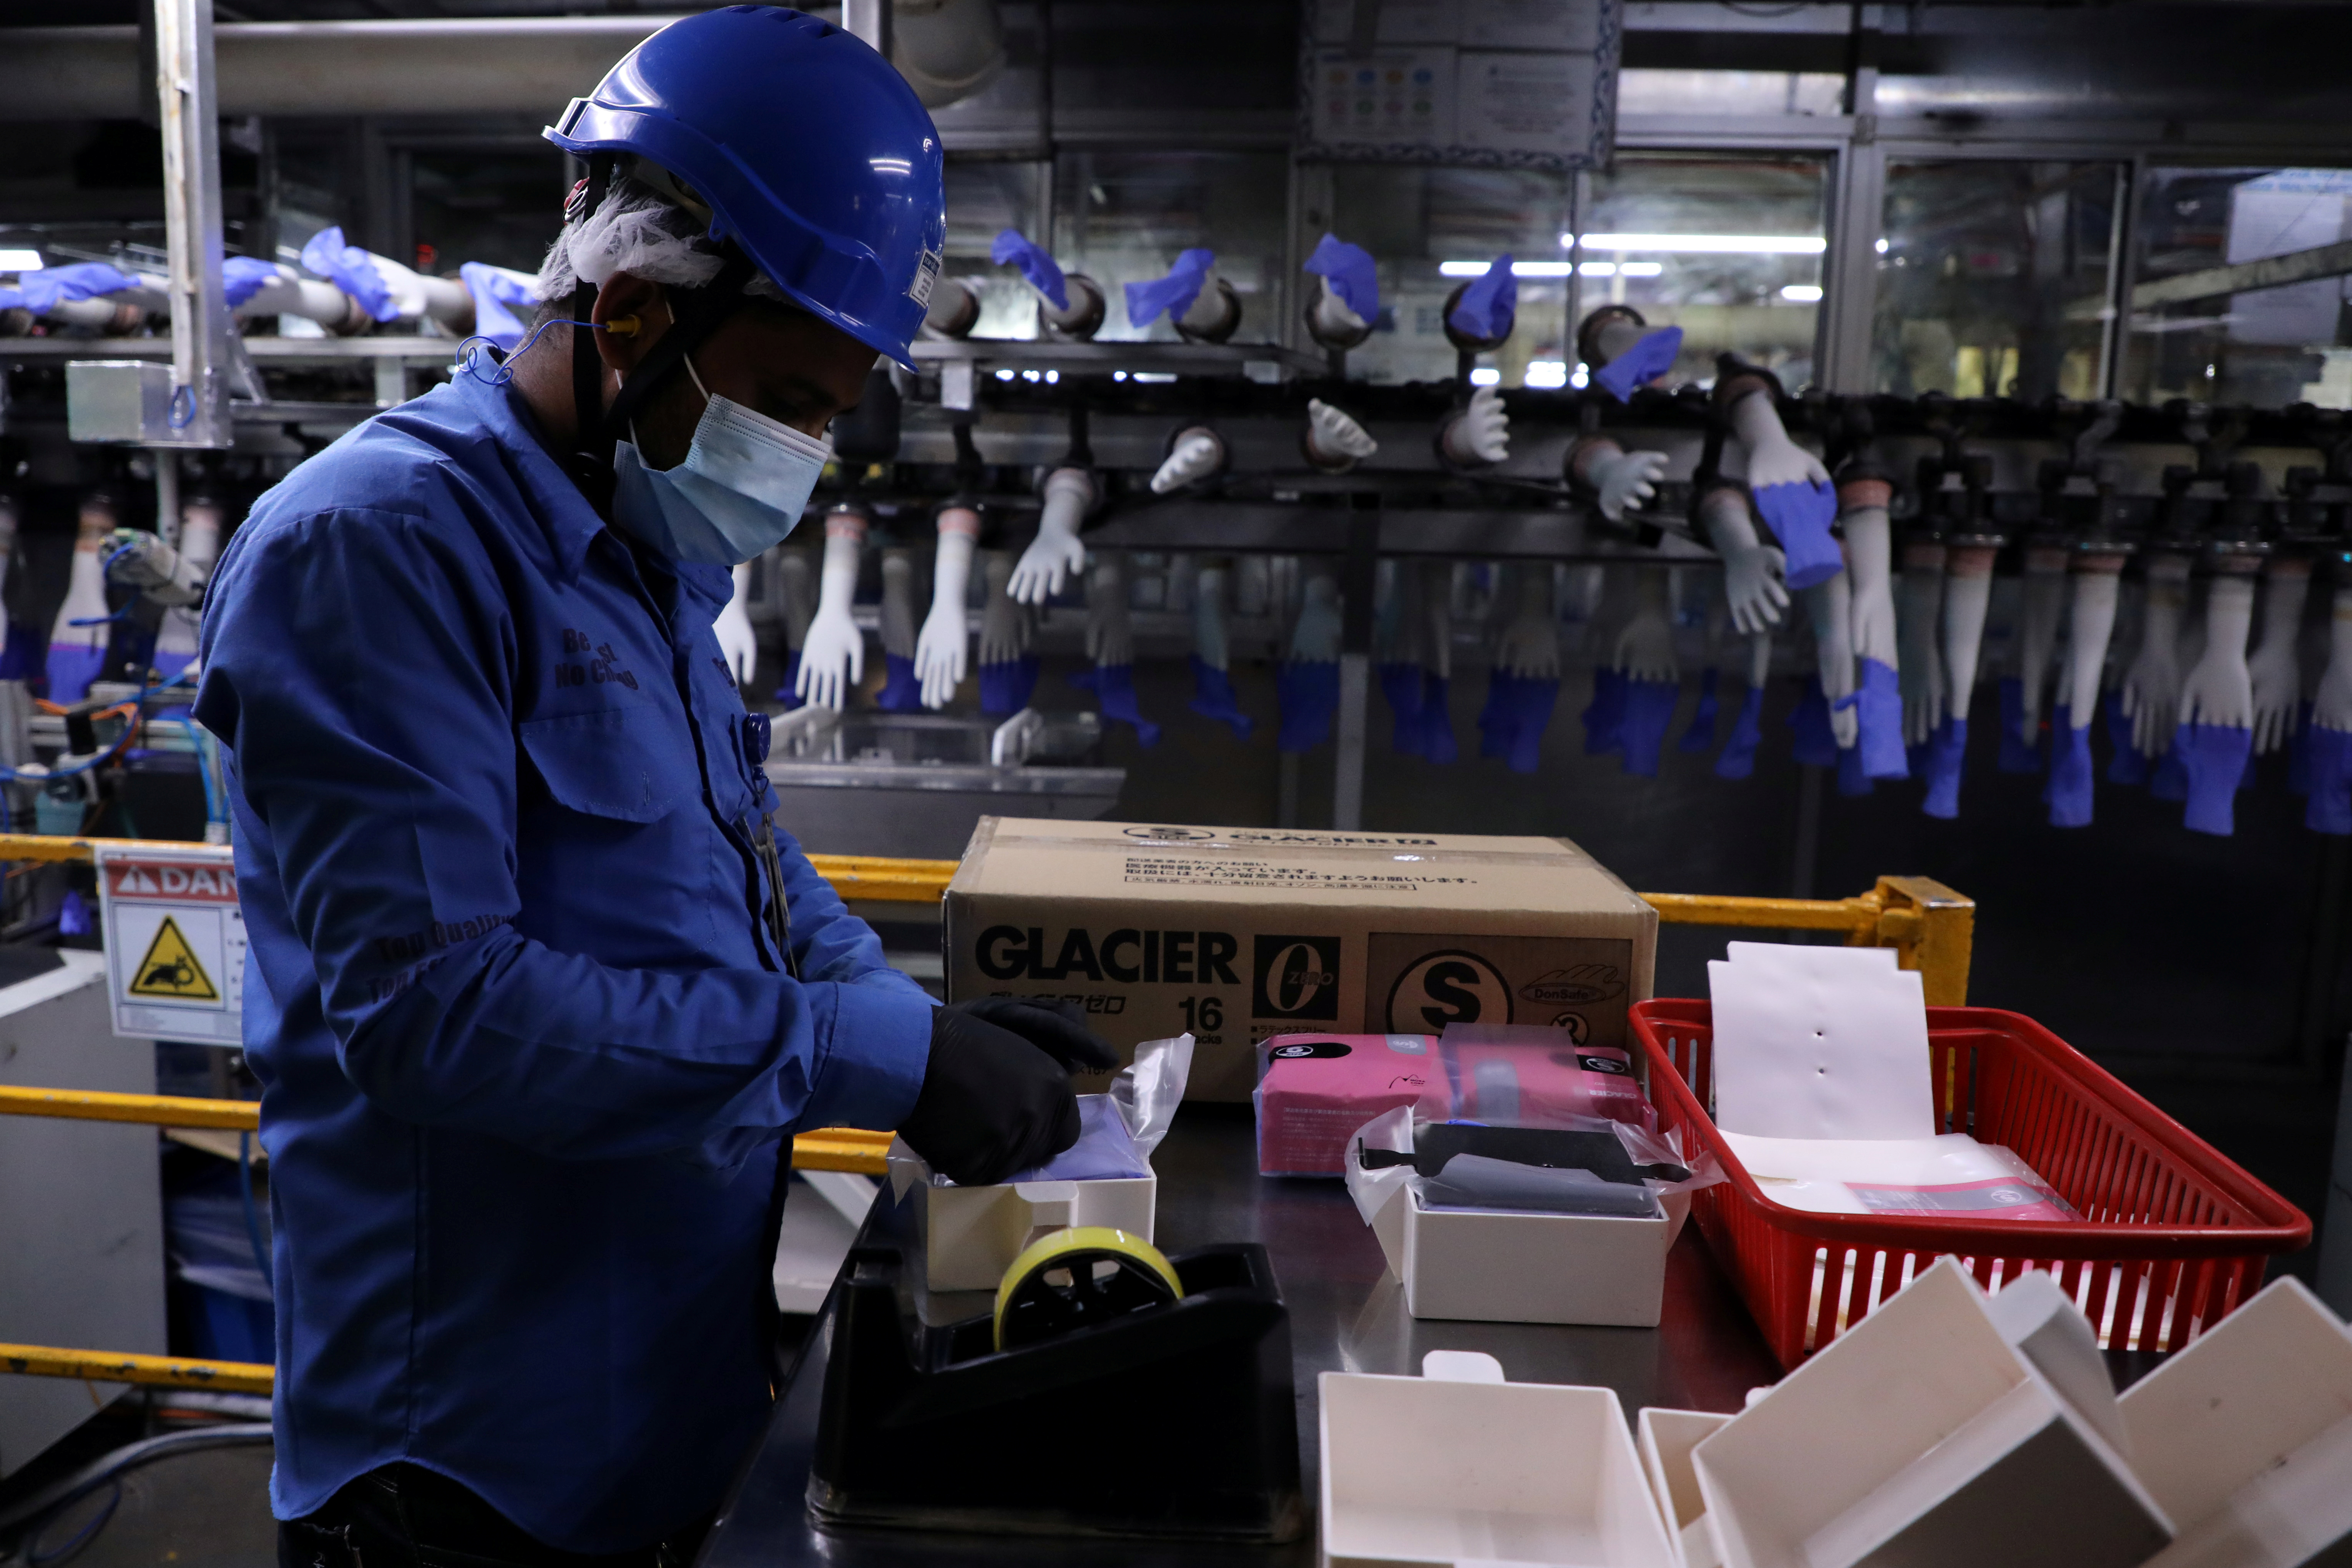 A worker works at a production line in Top Glove factory in Shah Alam, Malaysia August 26, 2020. REUTERS/Lim Huey Teng